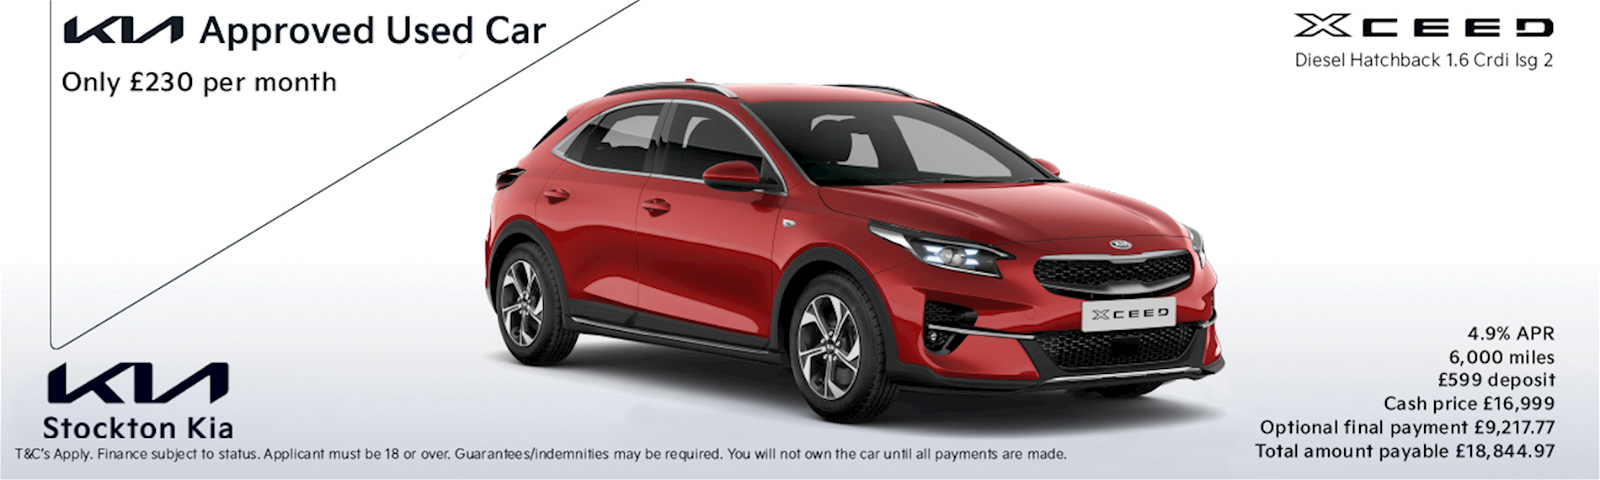 Kia Xceed used approved